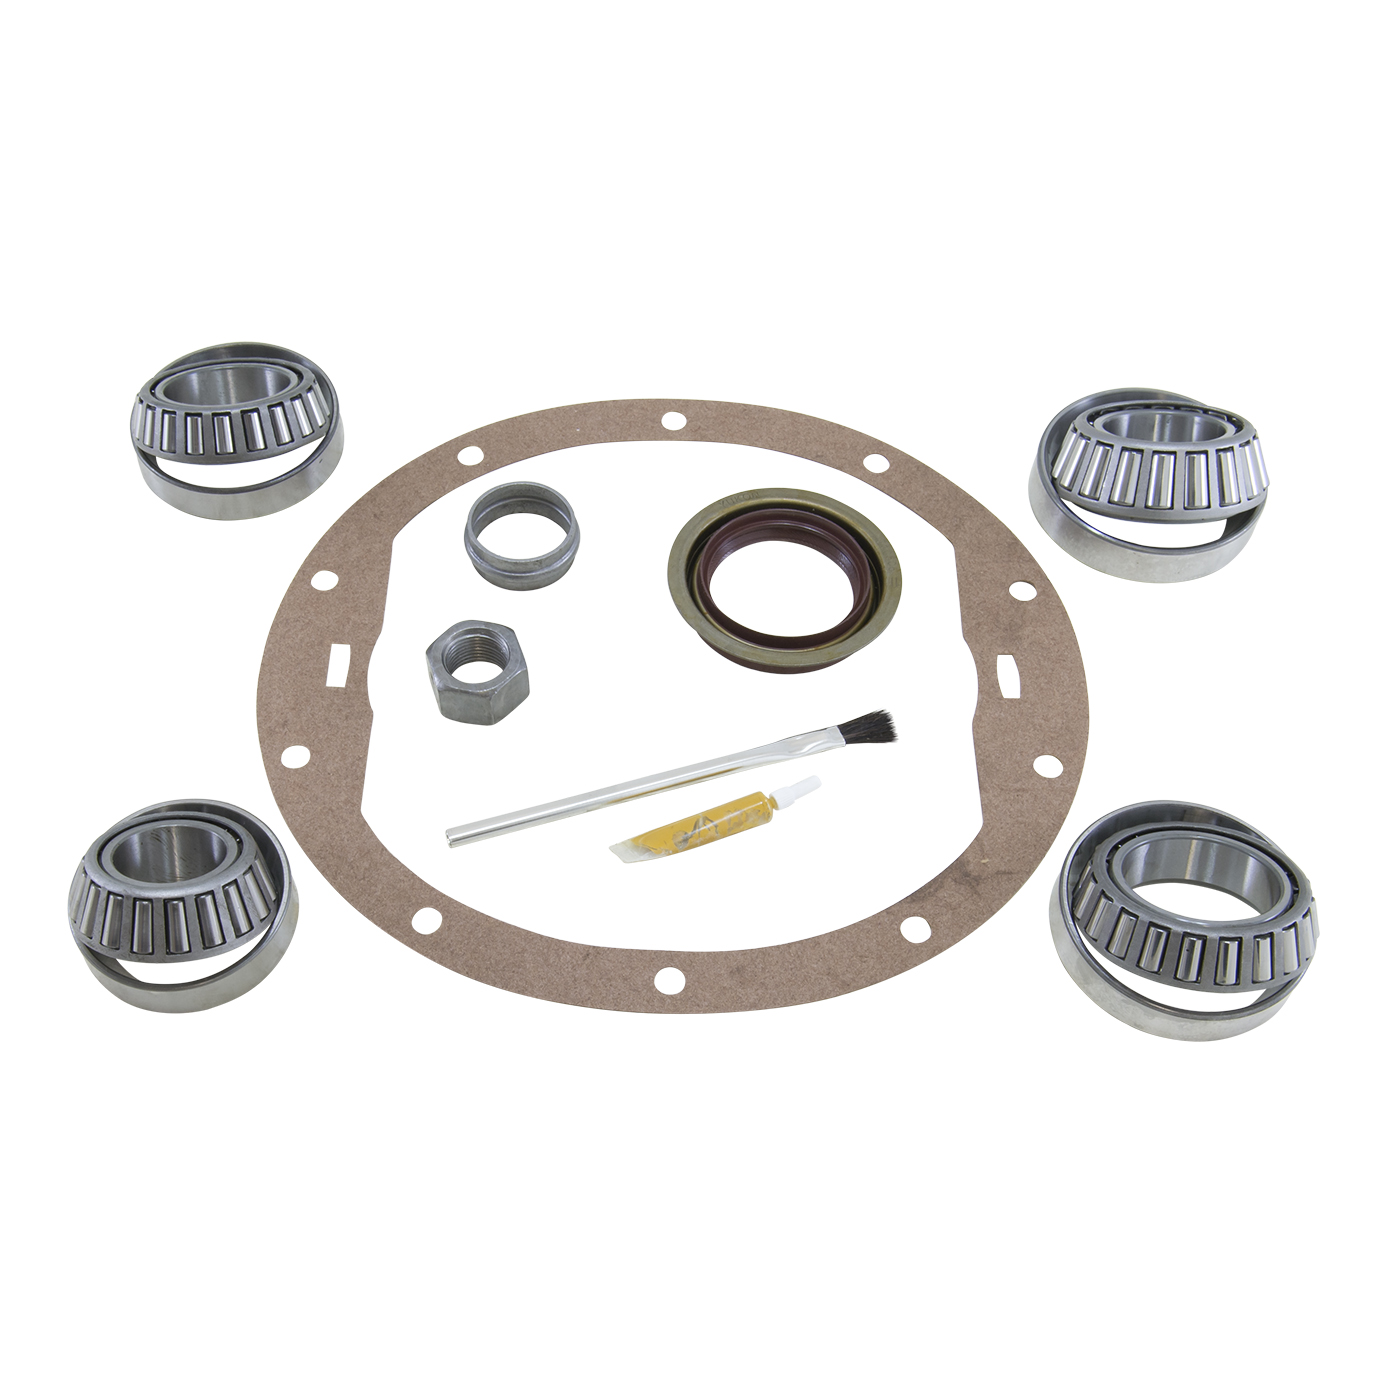 ZBKGM8.5-HD - USA Standard Bearing kit for GM 8.5